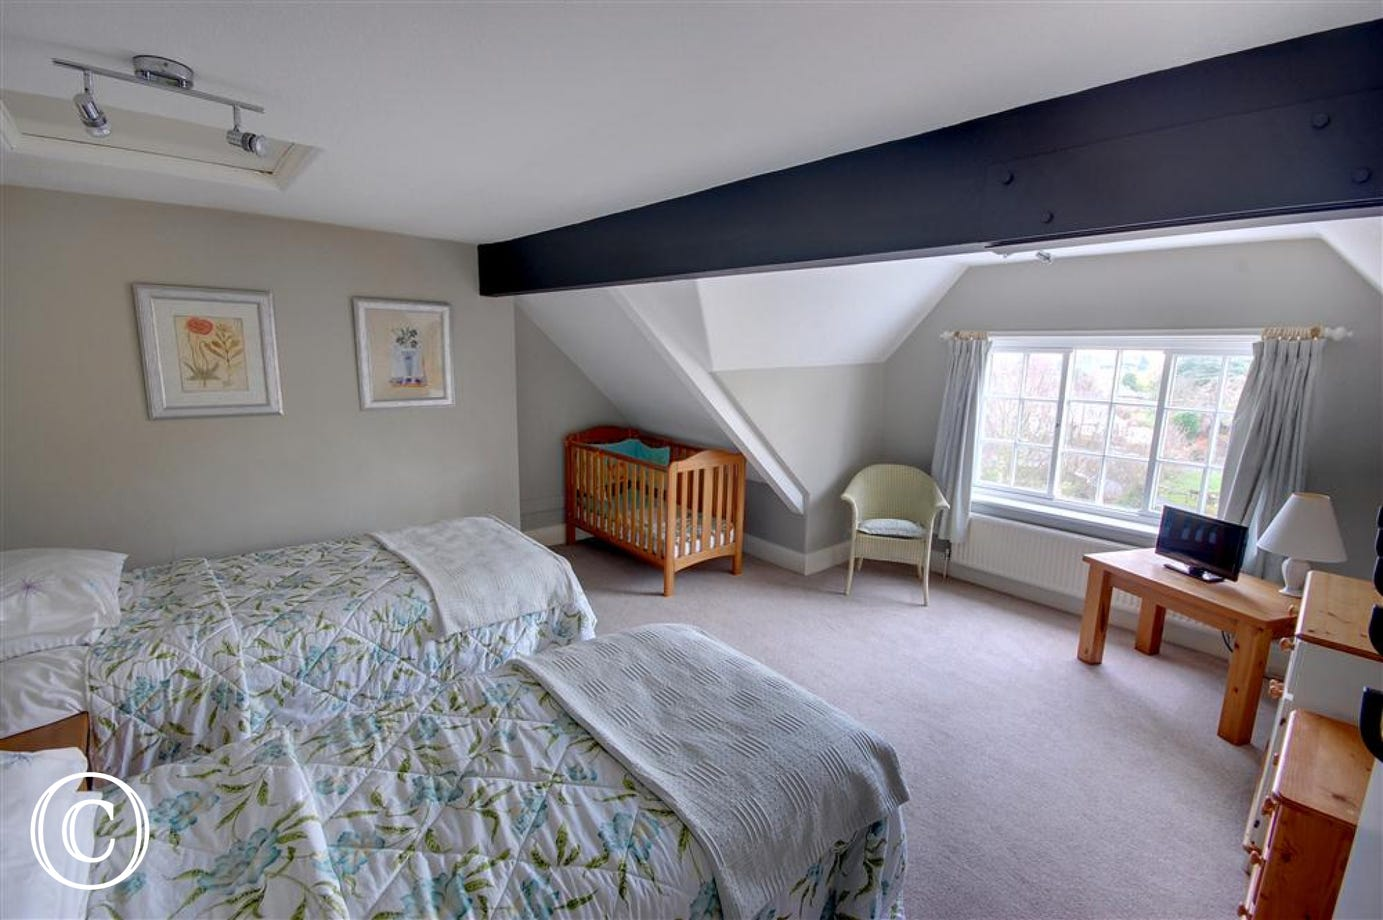 Spacious twin bedroom with single beds on the second floor. The window offers great views over the village of Scalby.